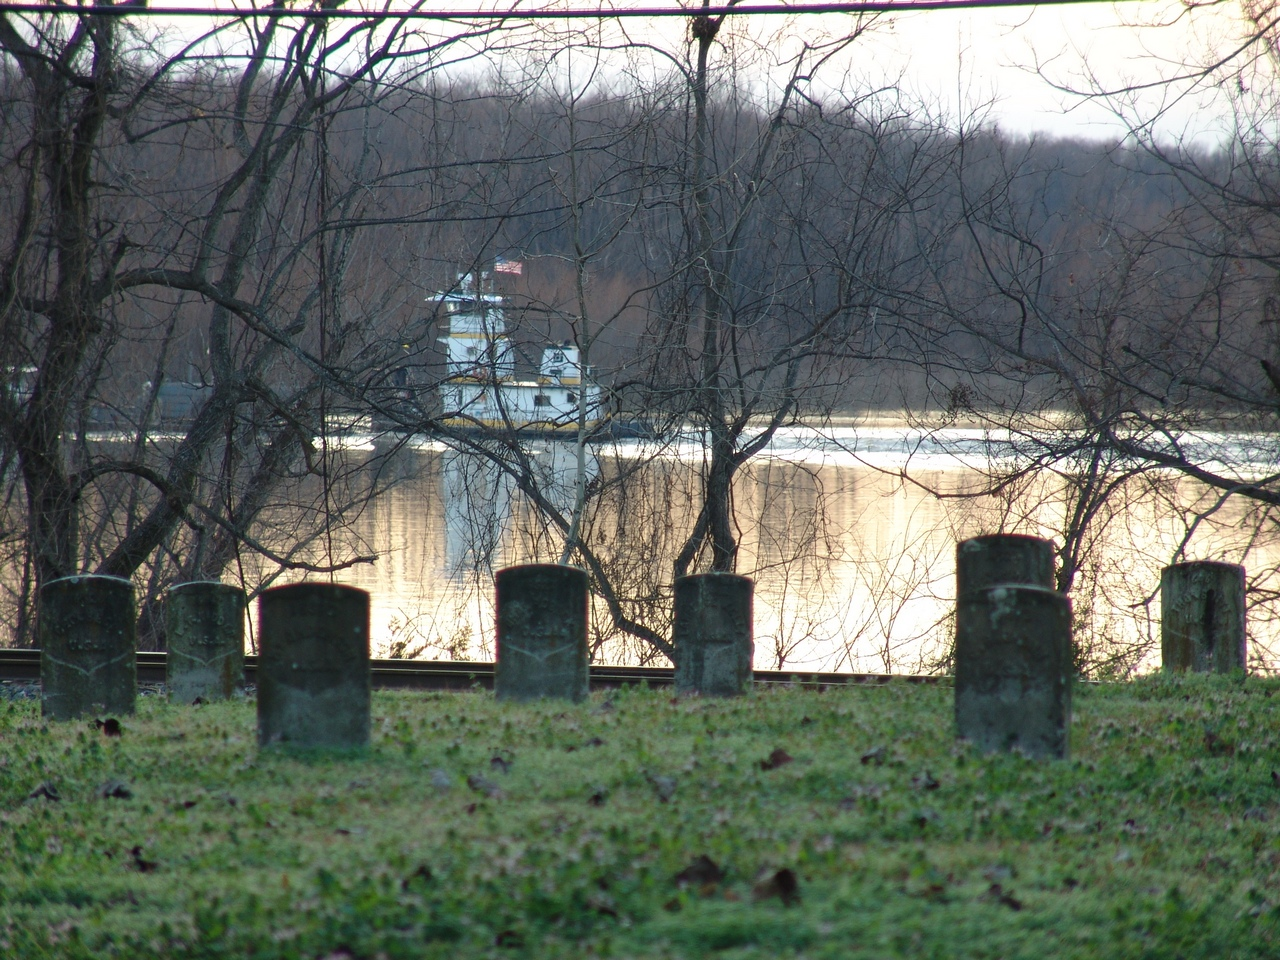 Towboat on Yazoo Diversion Canal seen from Vicksburg National Cemetery